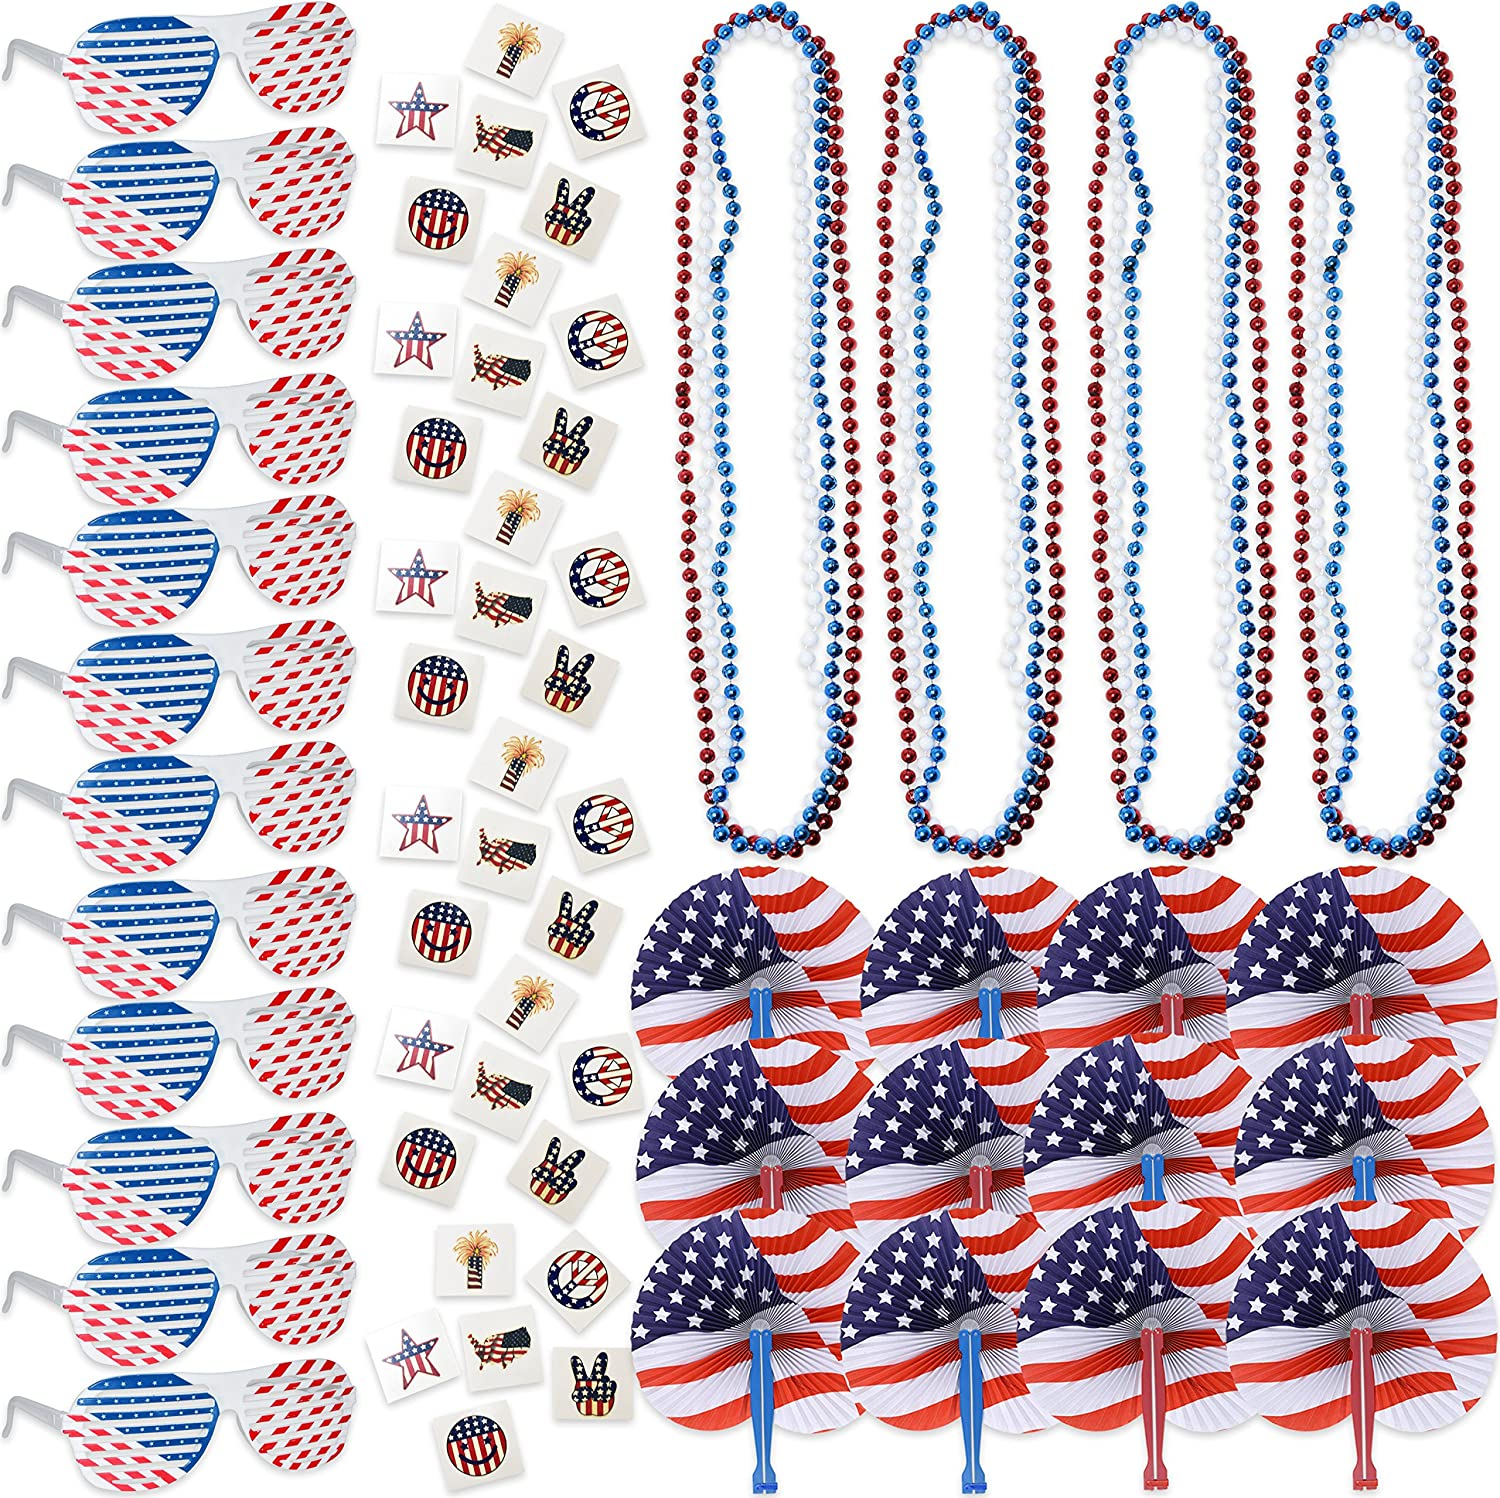 108 4th of July Patriotic American Flag Party Favors Bulk Includes 12 USA Shutter Shade Sunglasses 72 Fourth of July Temporary Tattoos 12 Red Blue and White Bead Necklaces and 12 American Folding Fans